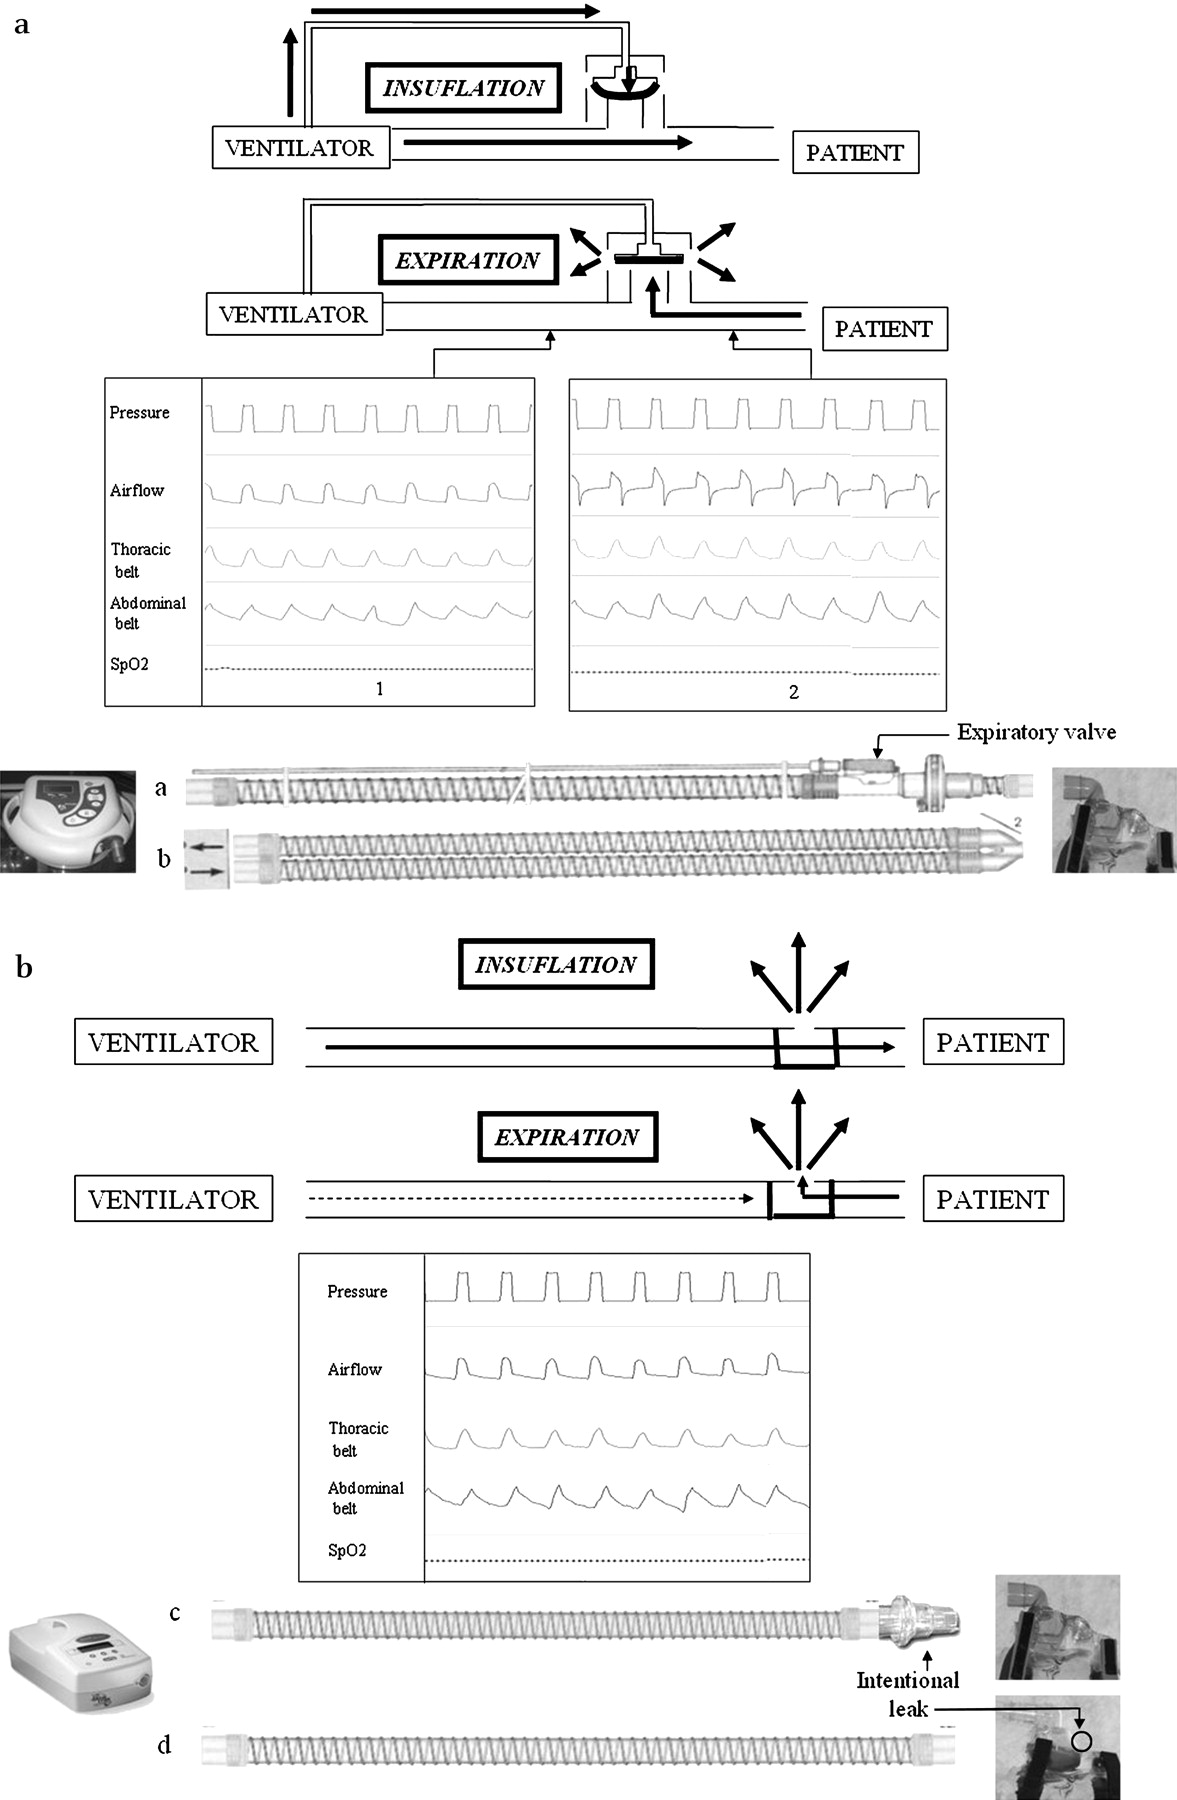 Ventilator Modes And Settings During Non Invasive Ventilation Fig 131 Common Circuit Symbols Used In Automobiles Download Figure